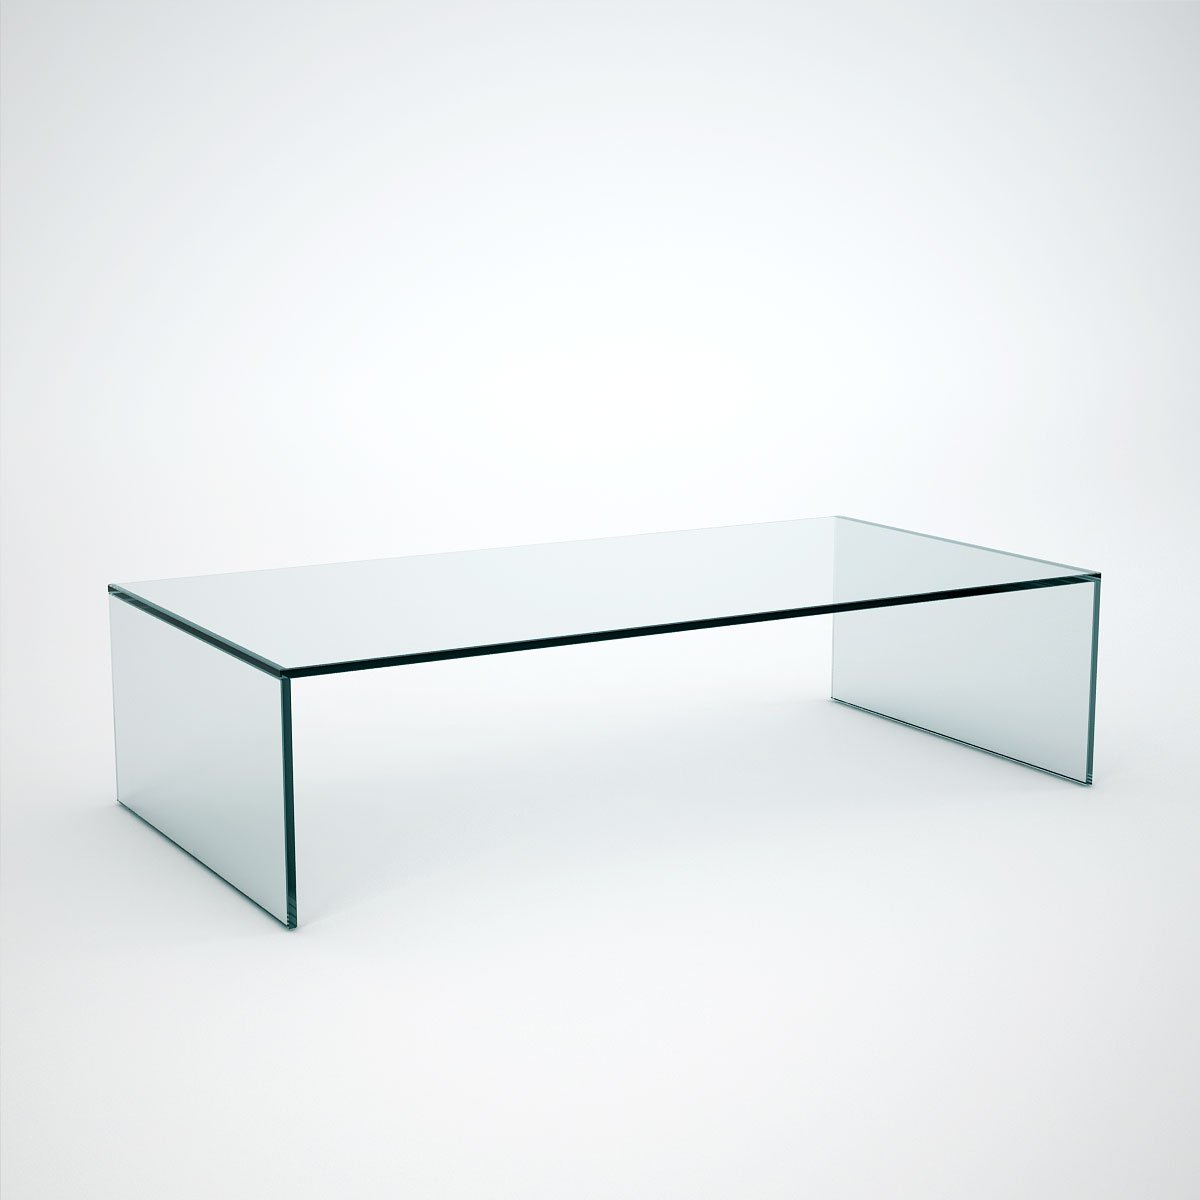 Judd rectangle glass coffee table klarity glass for Glass furniture